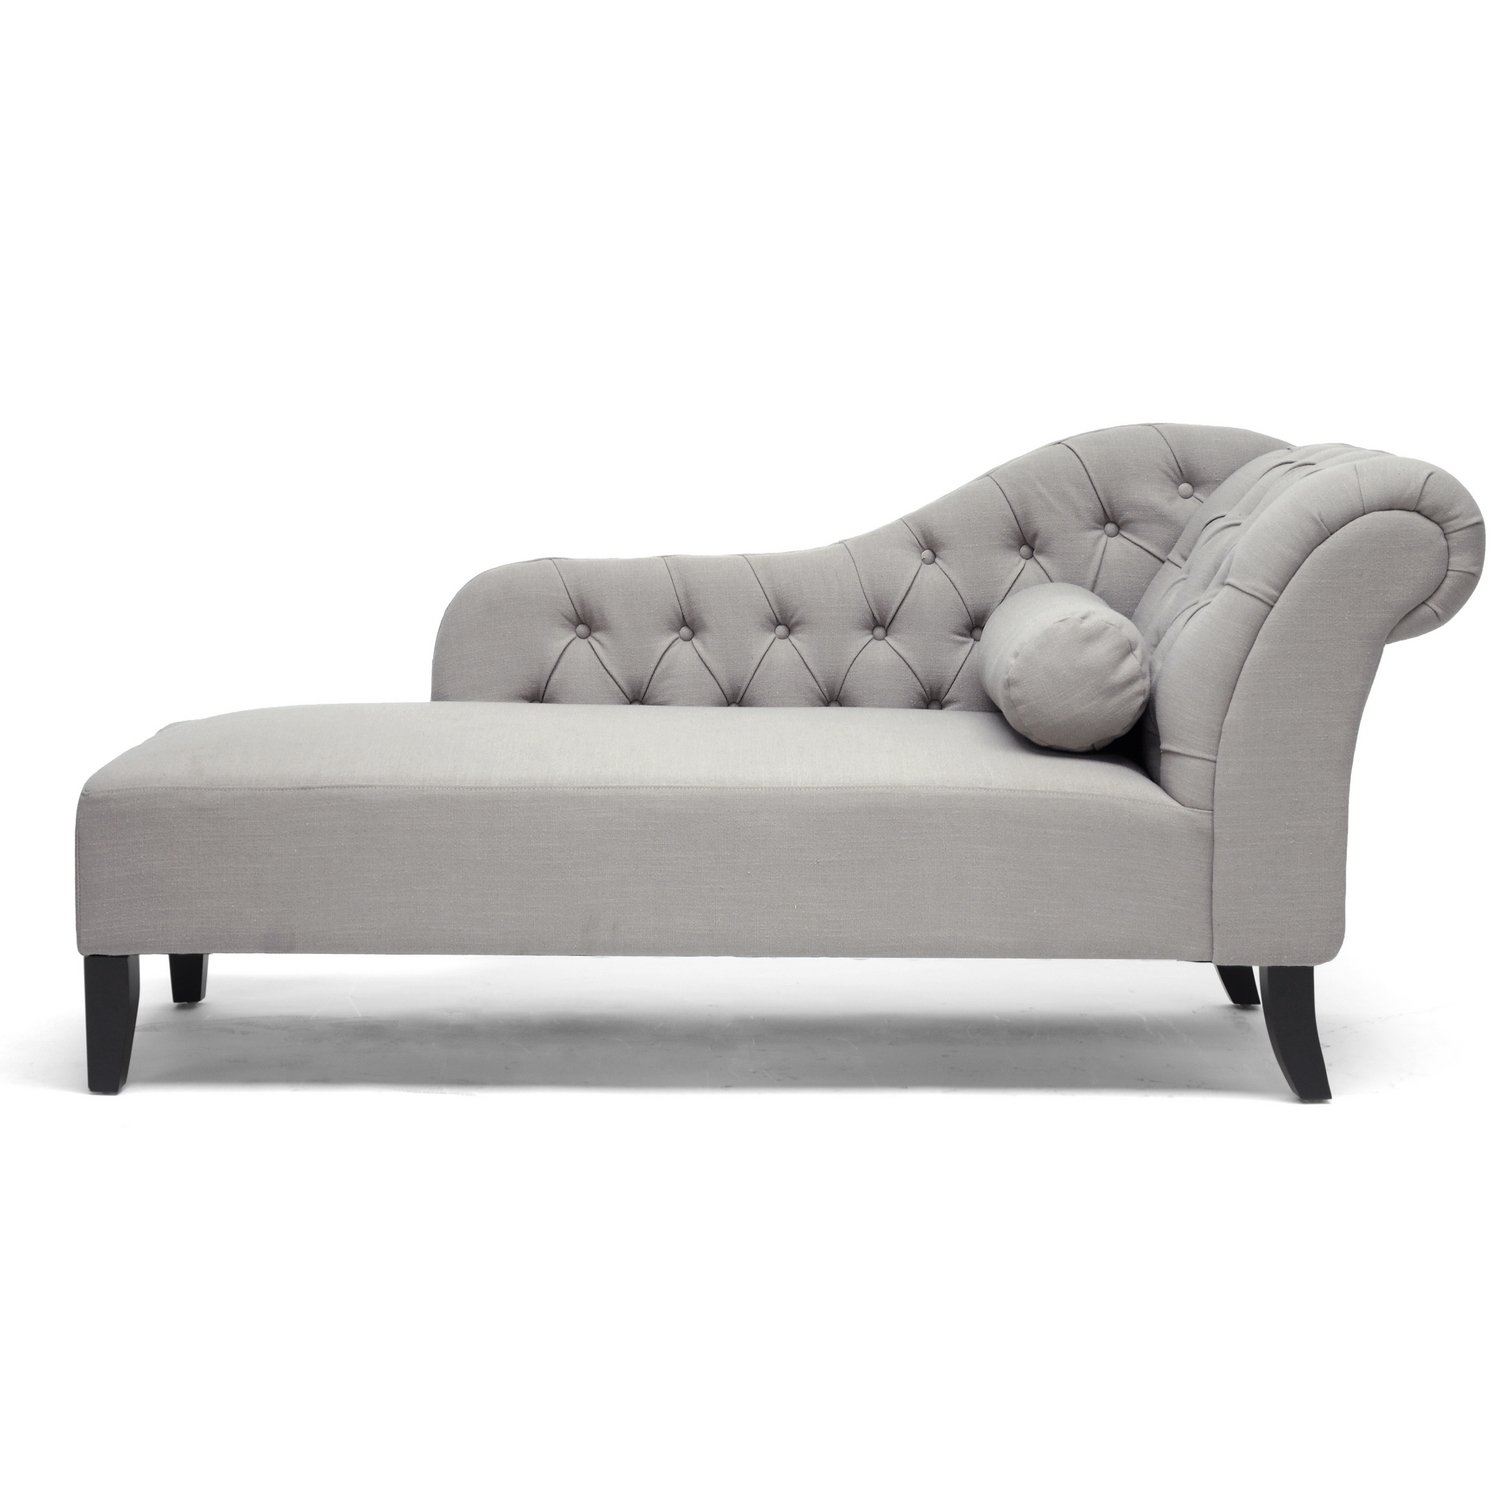 pin lounge cheap oversized kensington indoor reclining chaise